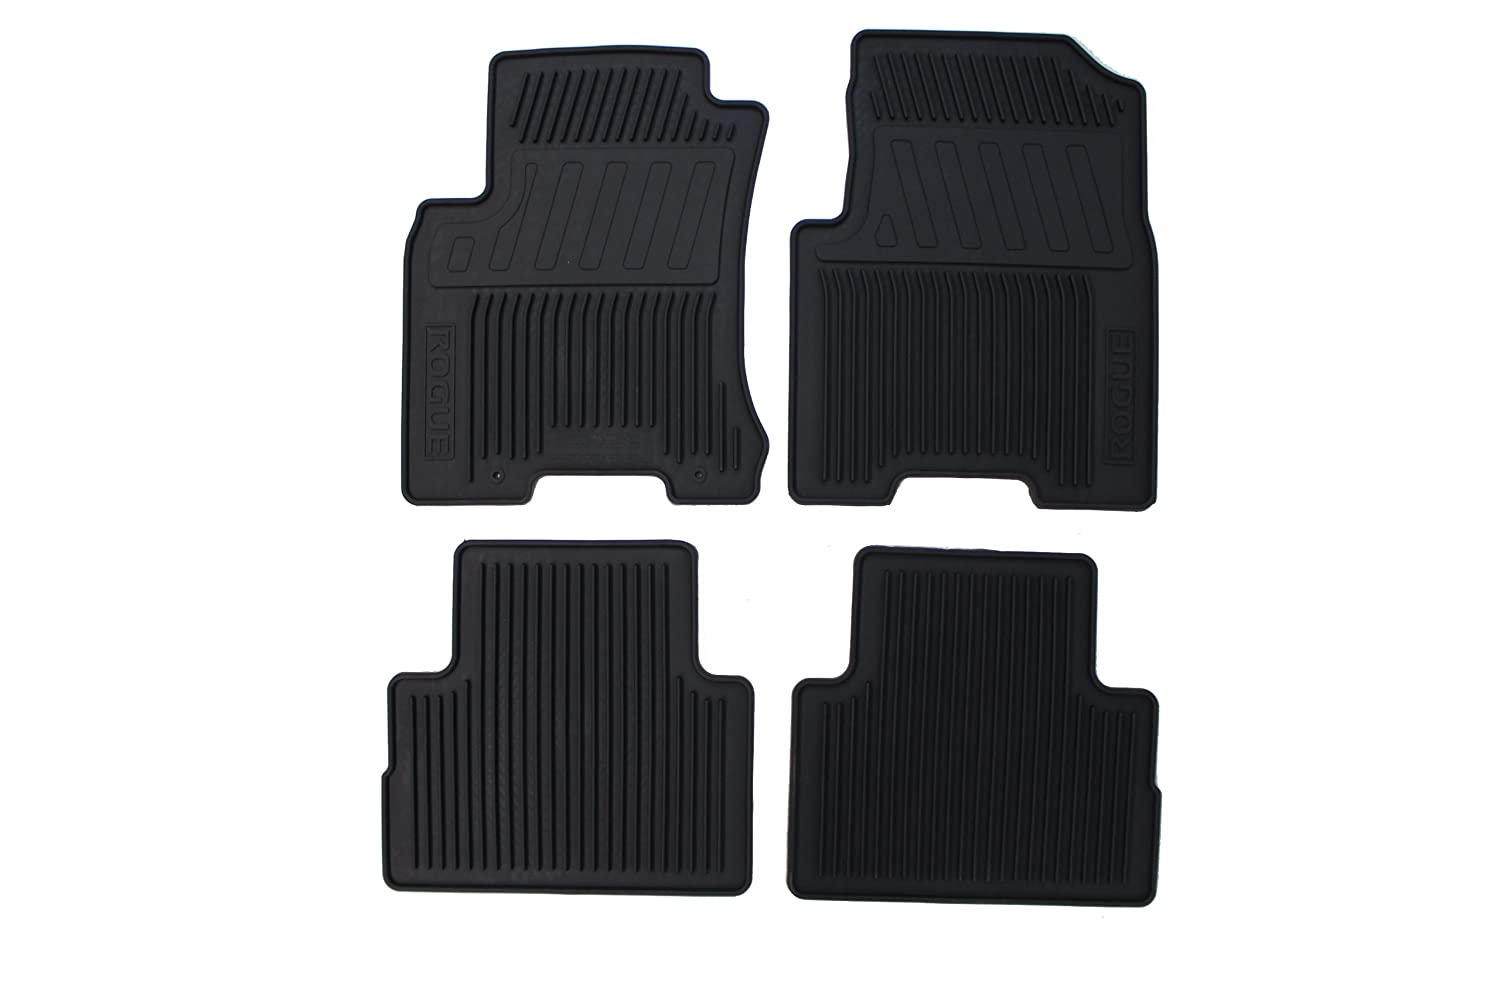 Rubber floor mats nissan rogue - Amazon Com Genuine Nissan Accessories 999e1 Gu001bk All Season Floor Mat Set Of 4 Automotive